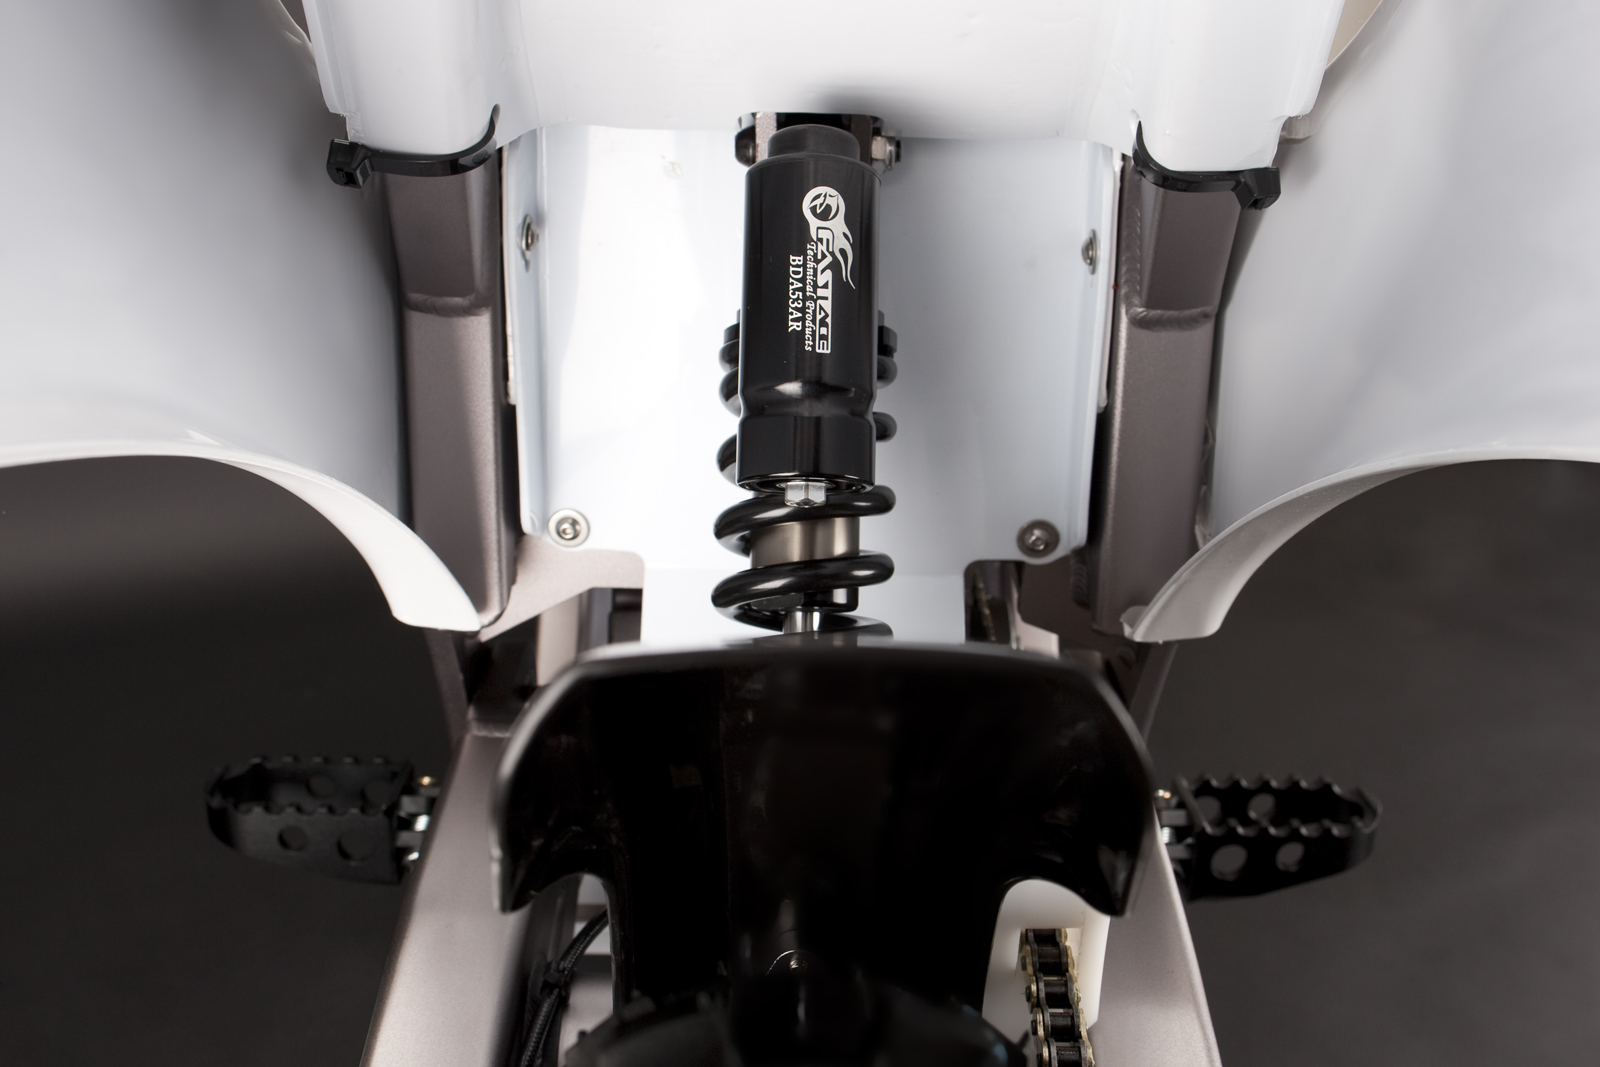 '.2010 Zero MX Electric Motorcycle: Rear Shock.'